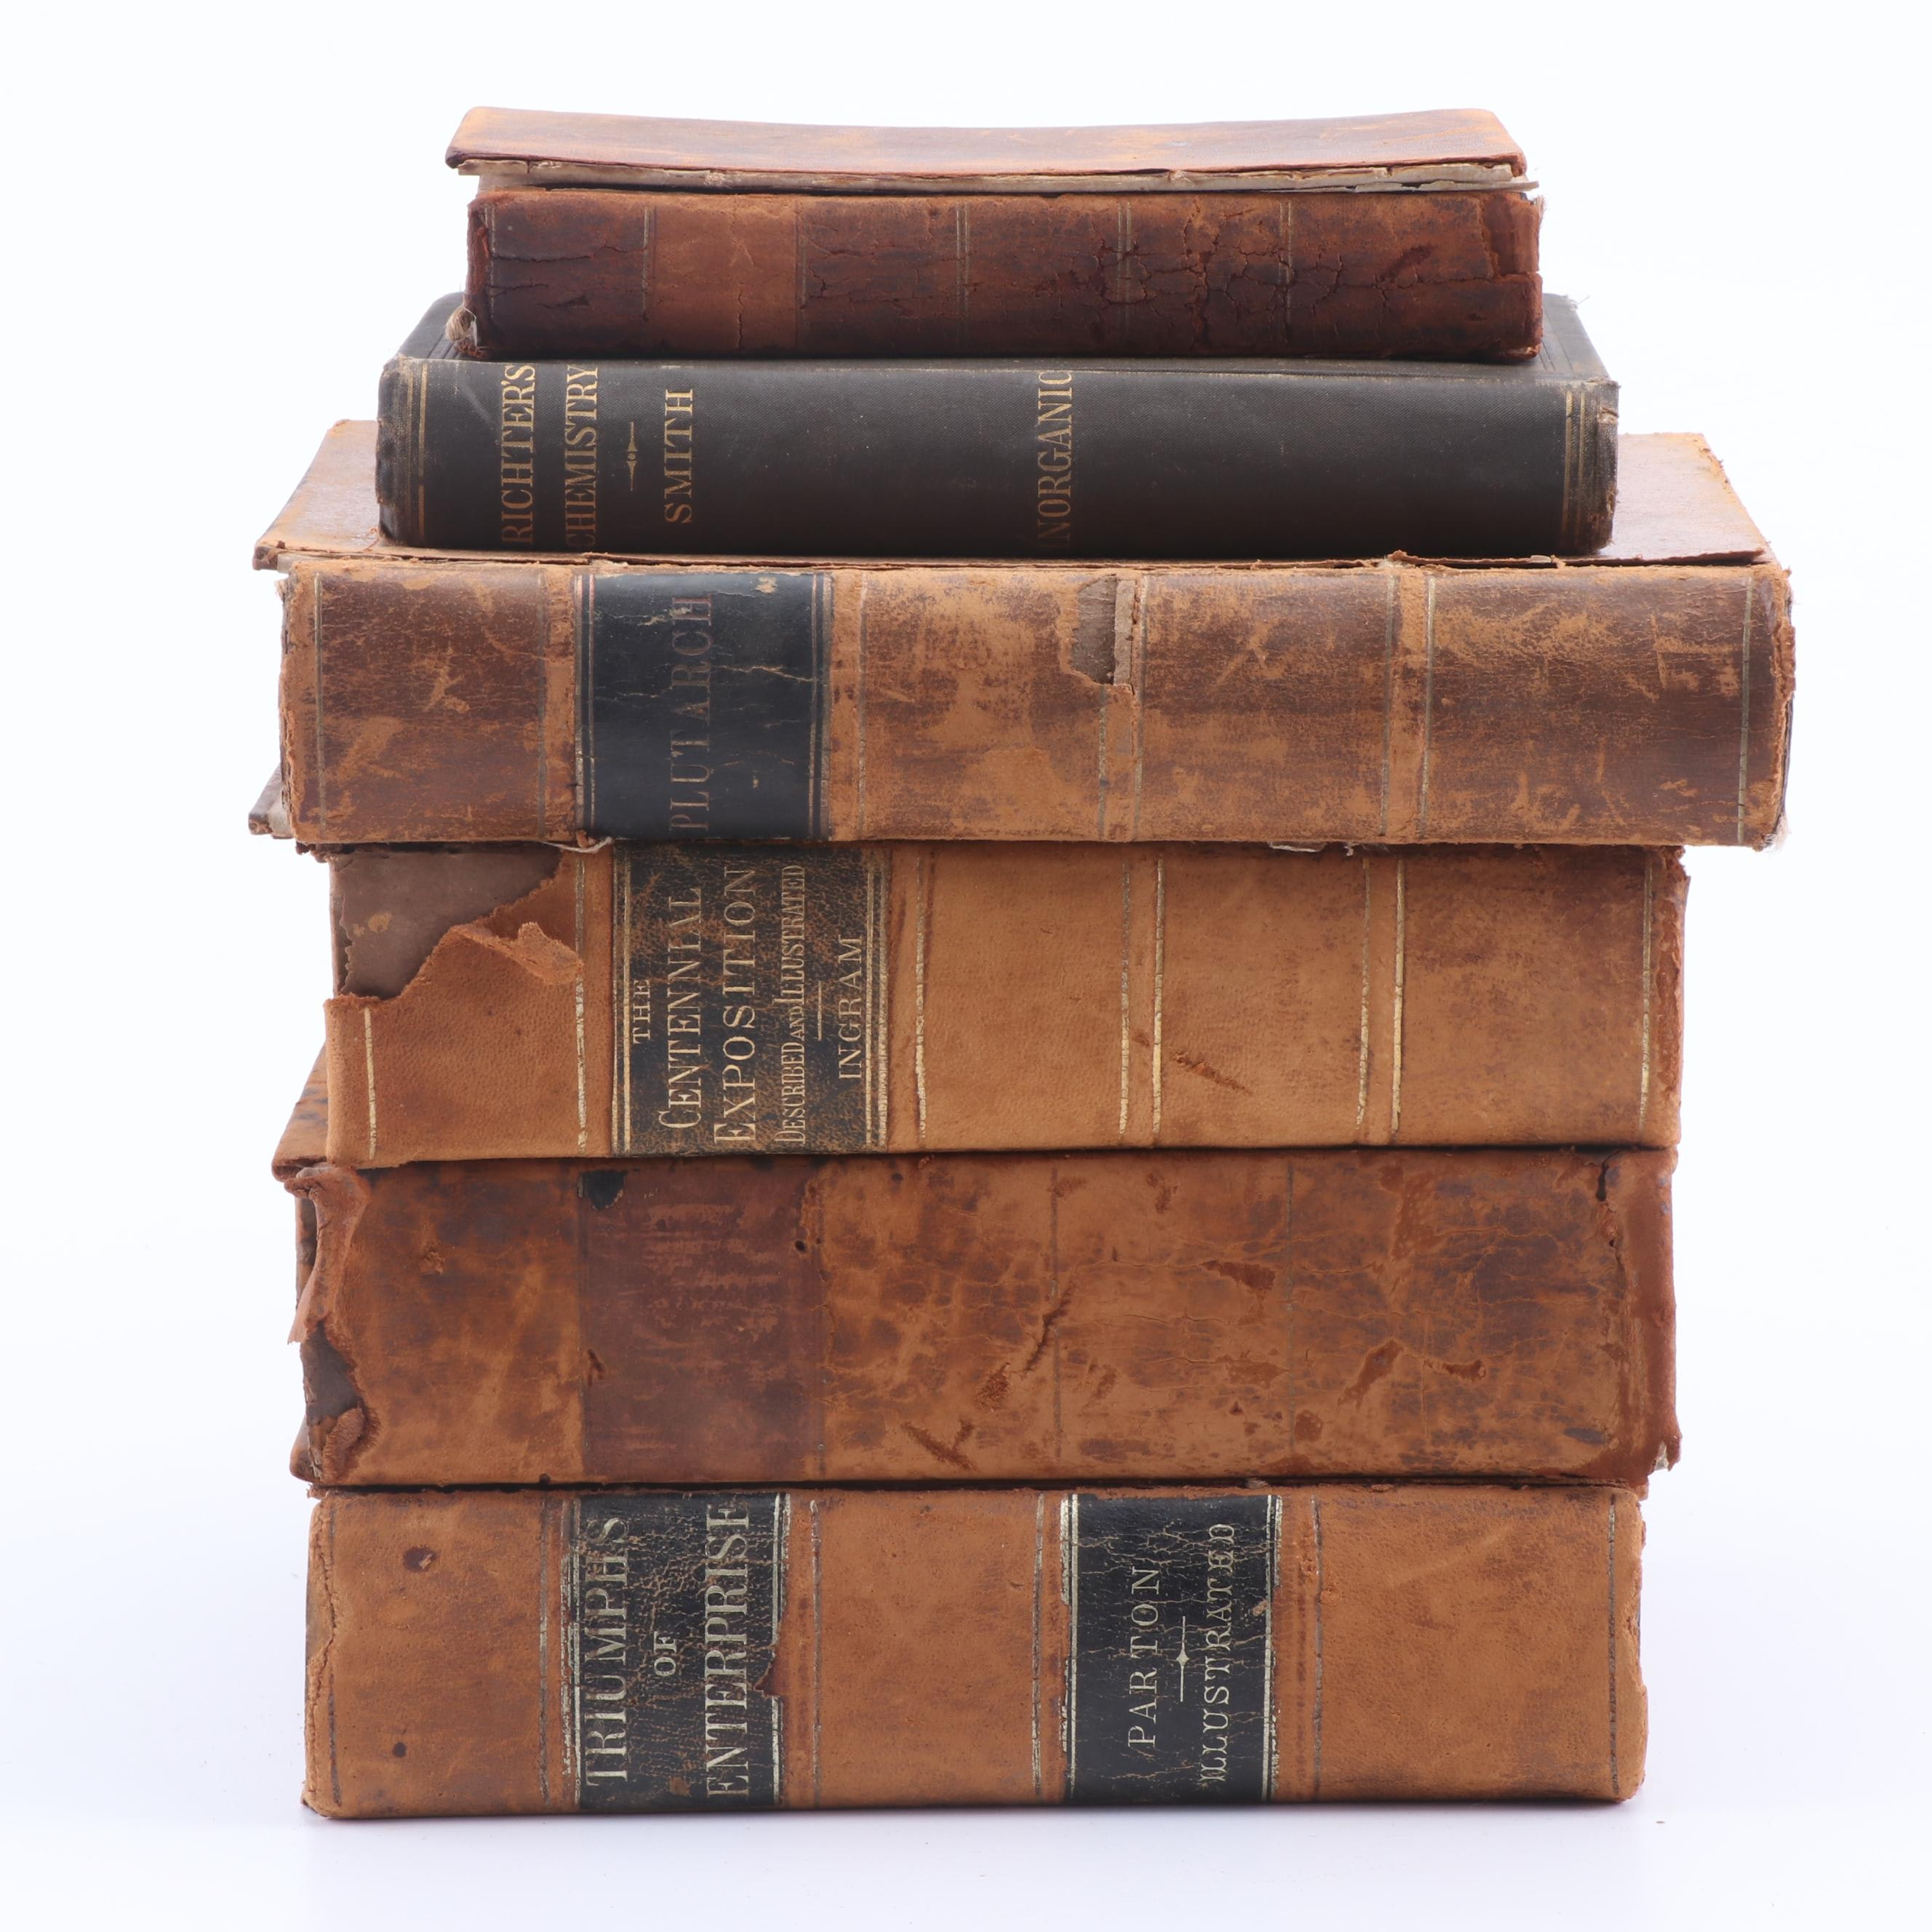 19th Century Books on History and Humanities